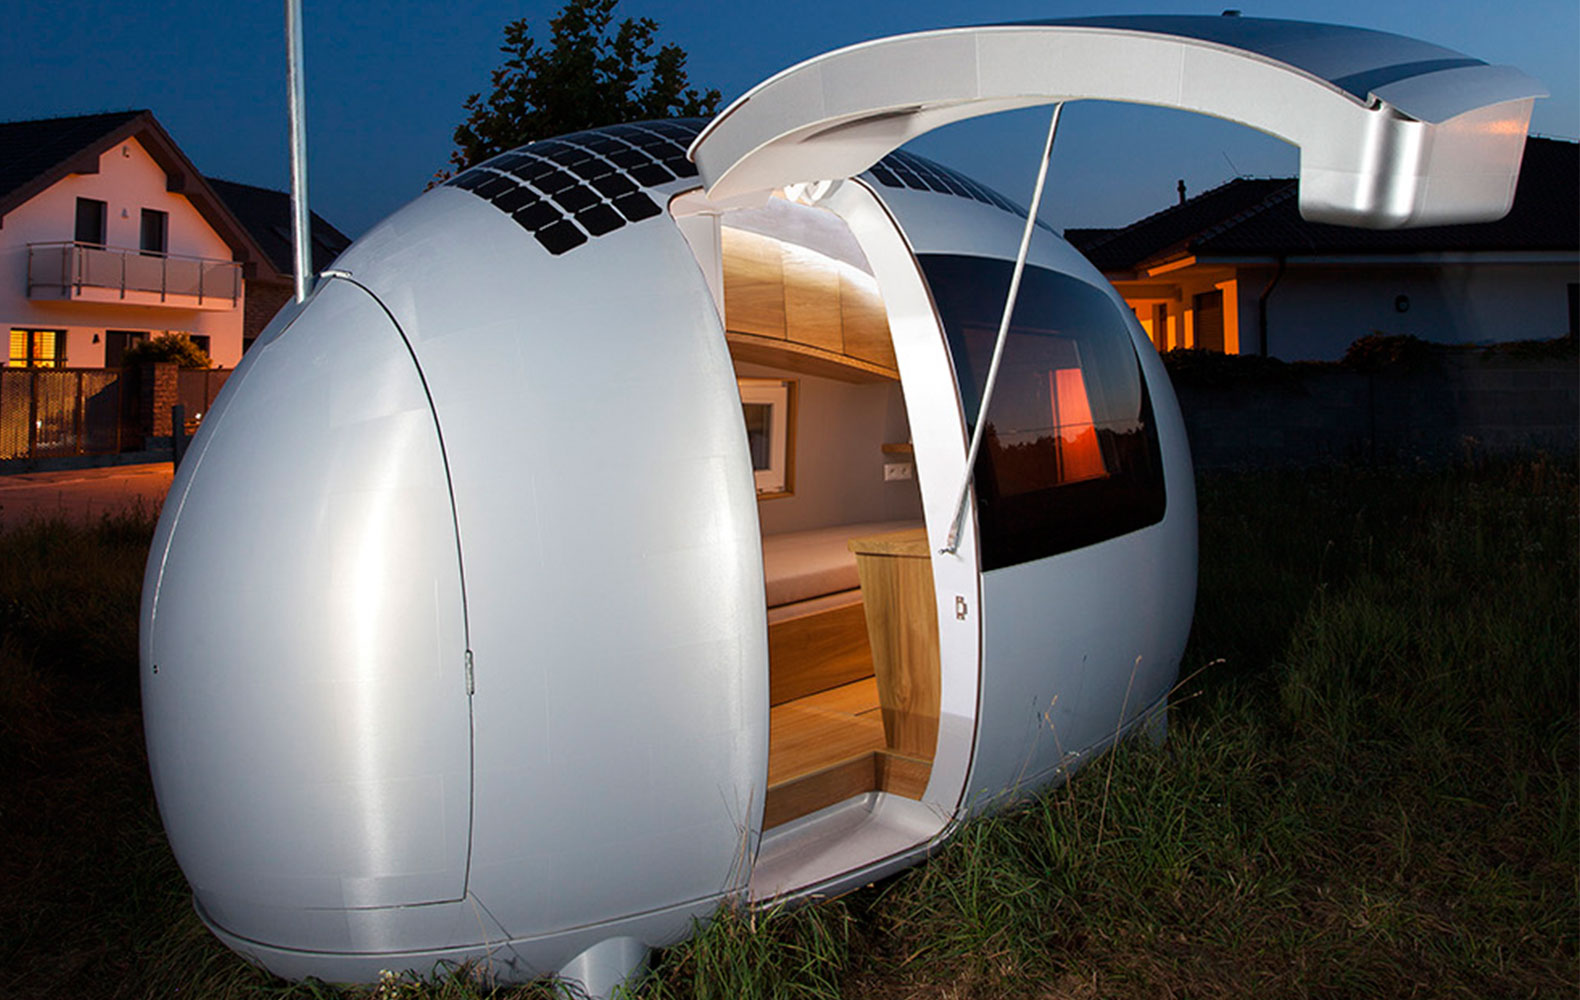 Worldu0027s First Off Grid Ecocapsule Home To Hit The Market This Year,  Shipping In 2016 Nice Architects Ecocapsule Solar Powered Off Grid Egg Home  U2013 Inhabitat ...